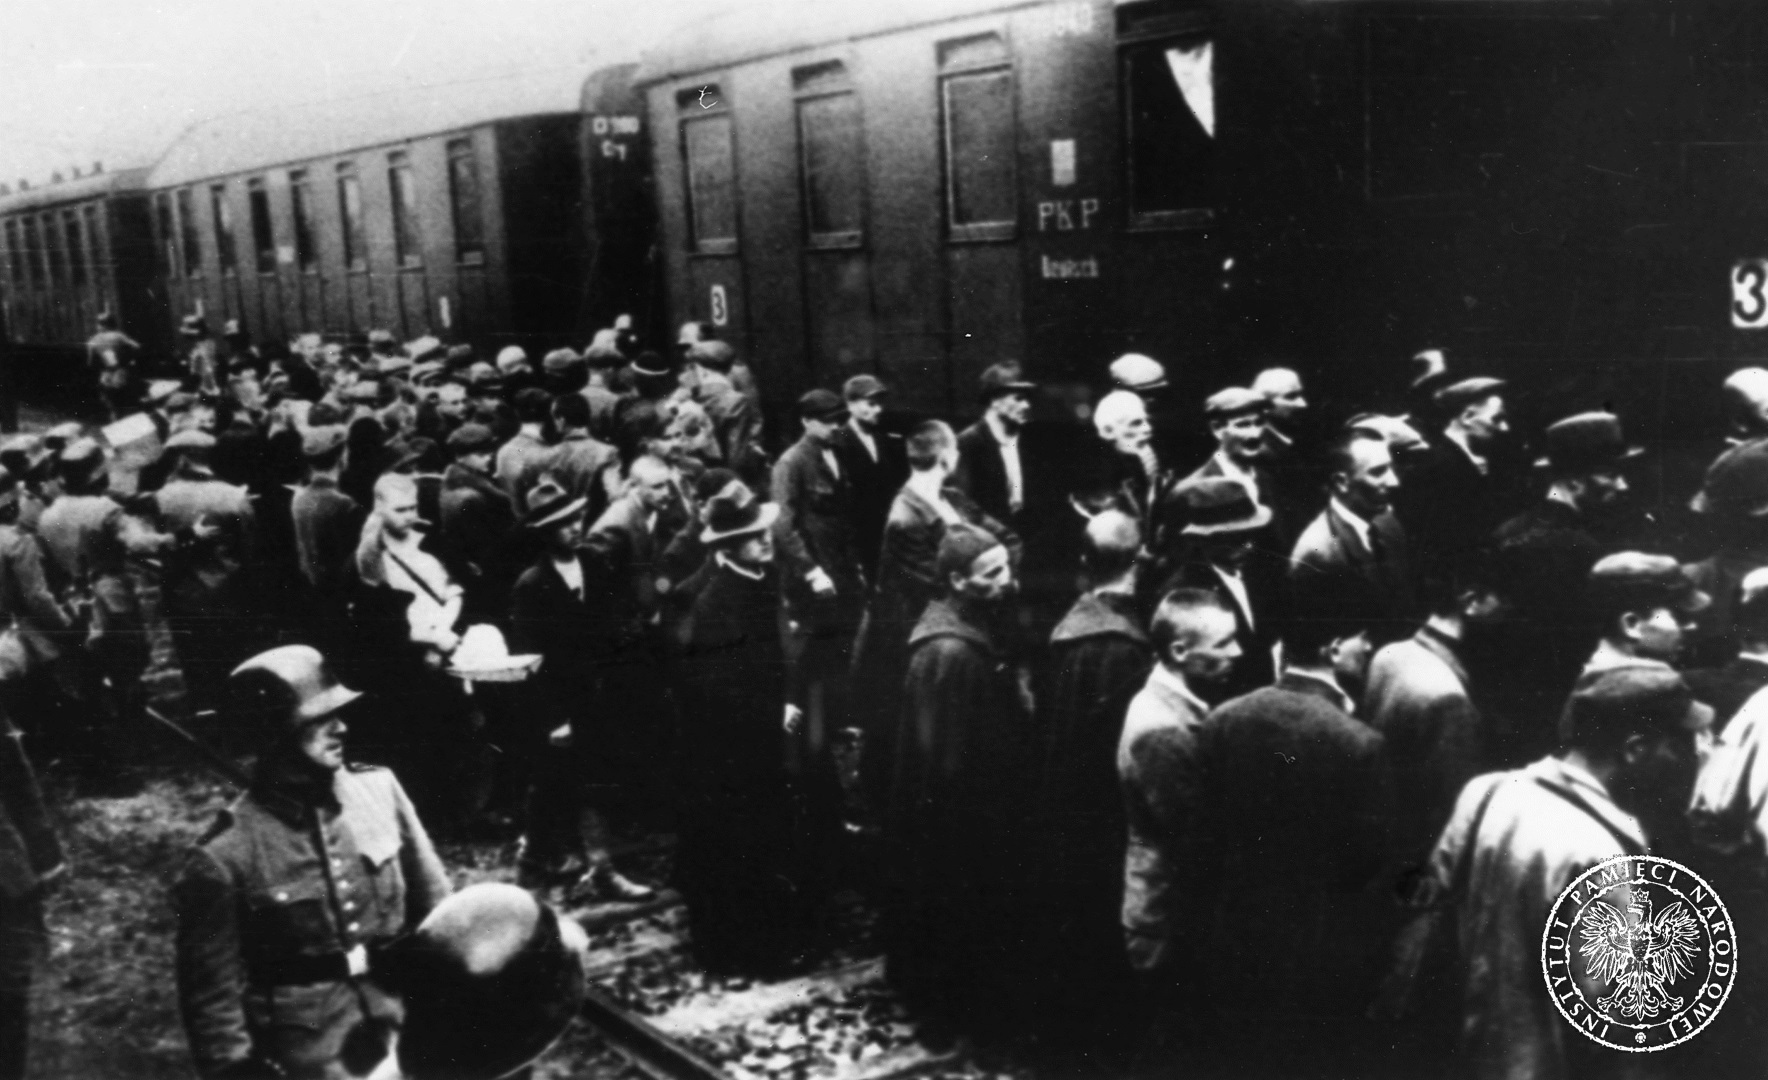 File:First transport to Auschwitz (Tarnów - 14th June 1940).png